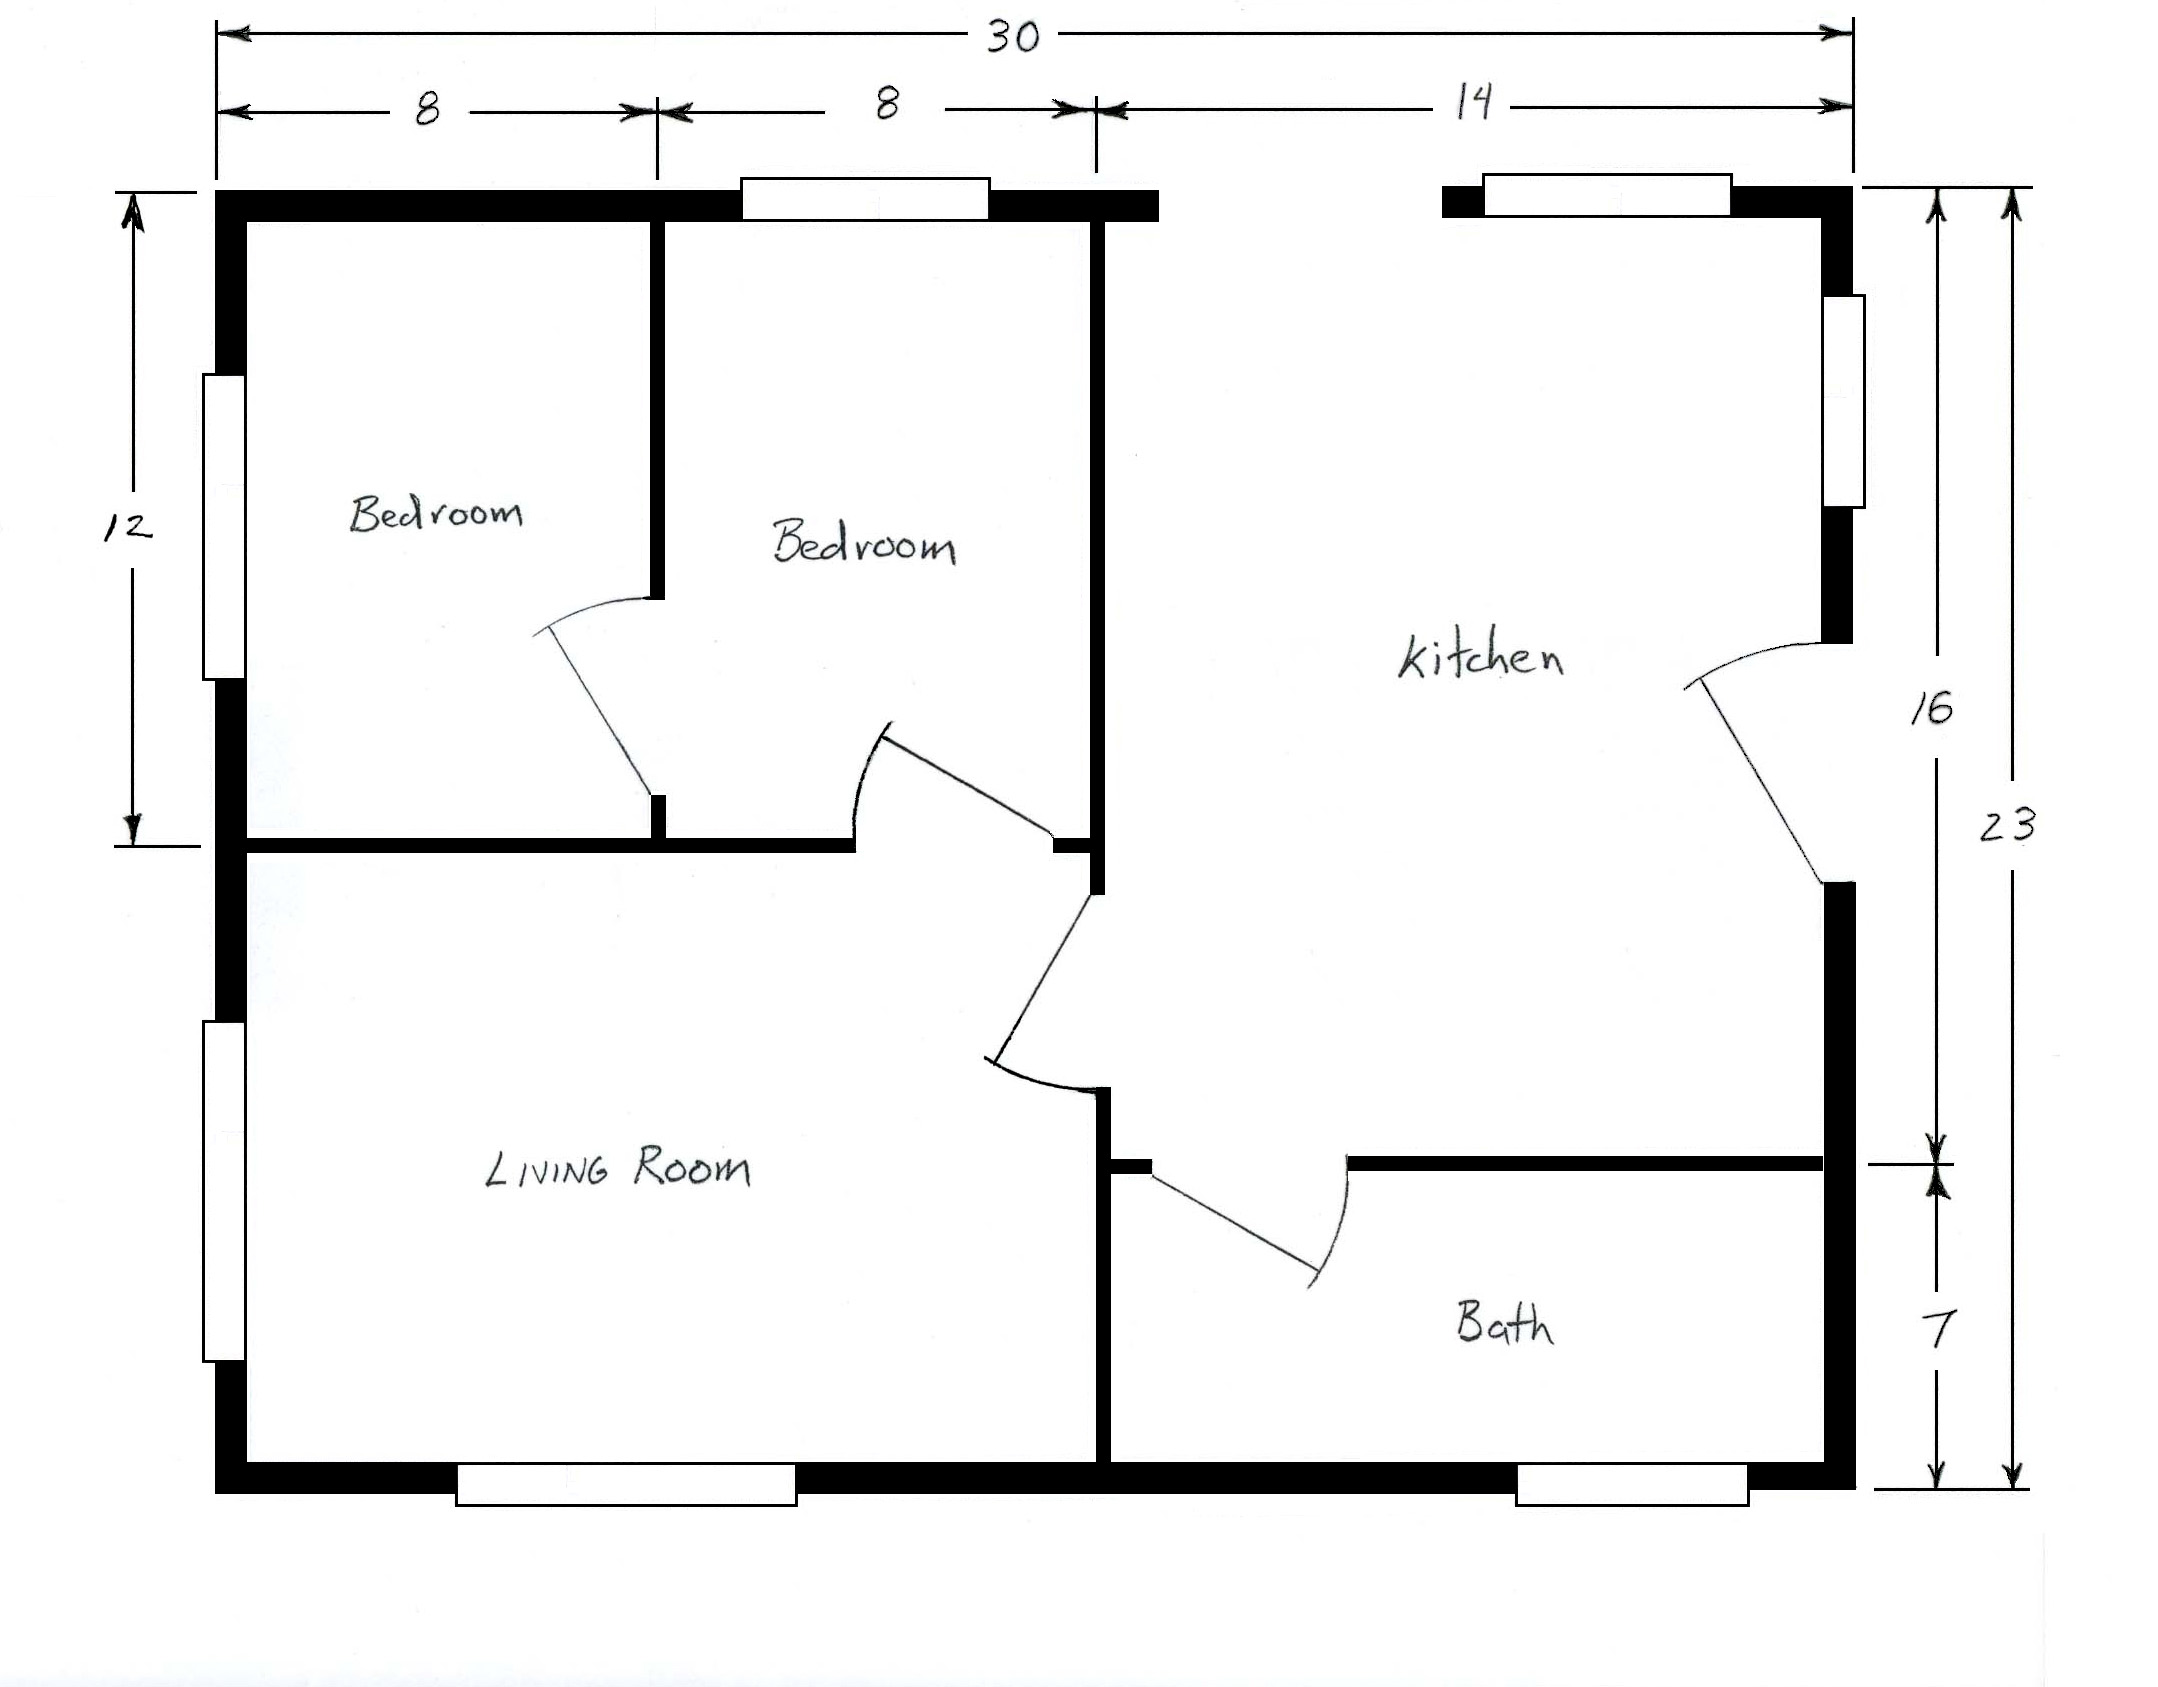 Free home plans sample house floor plans for Floor plan blueprints free